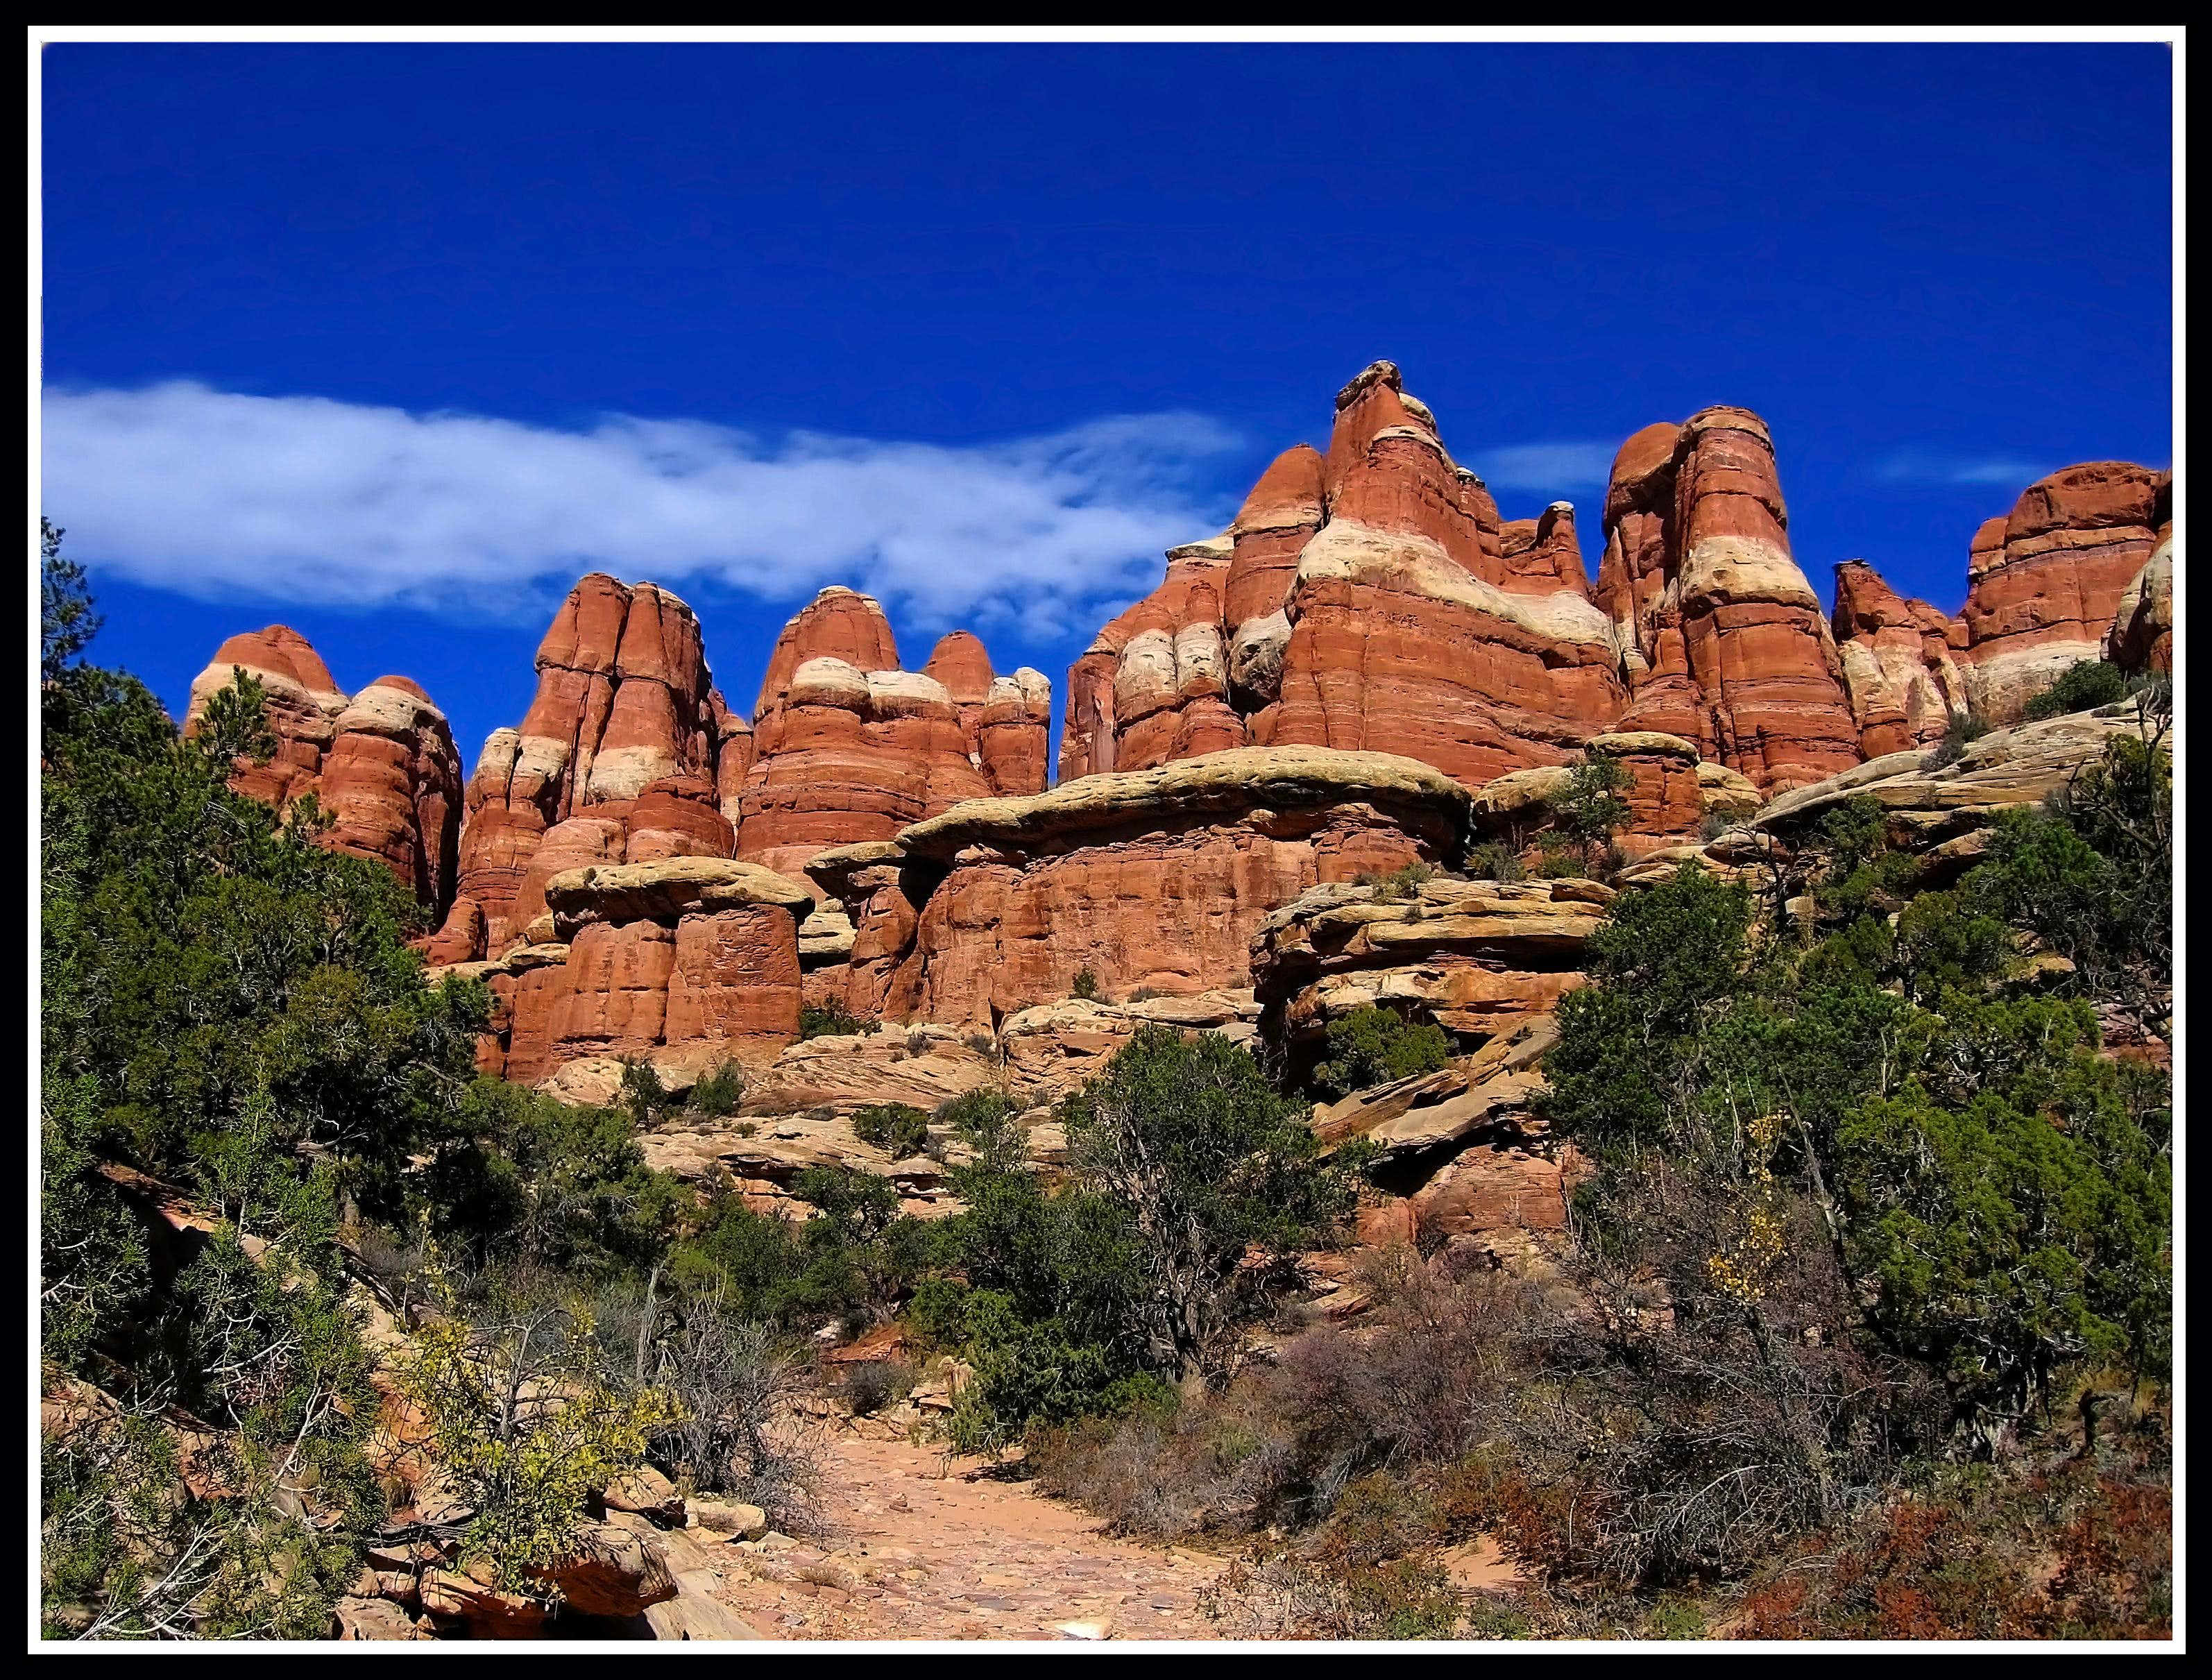 The Needles of Canyonlands - Oct. 15-18 2009